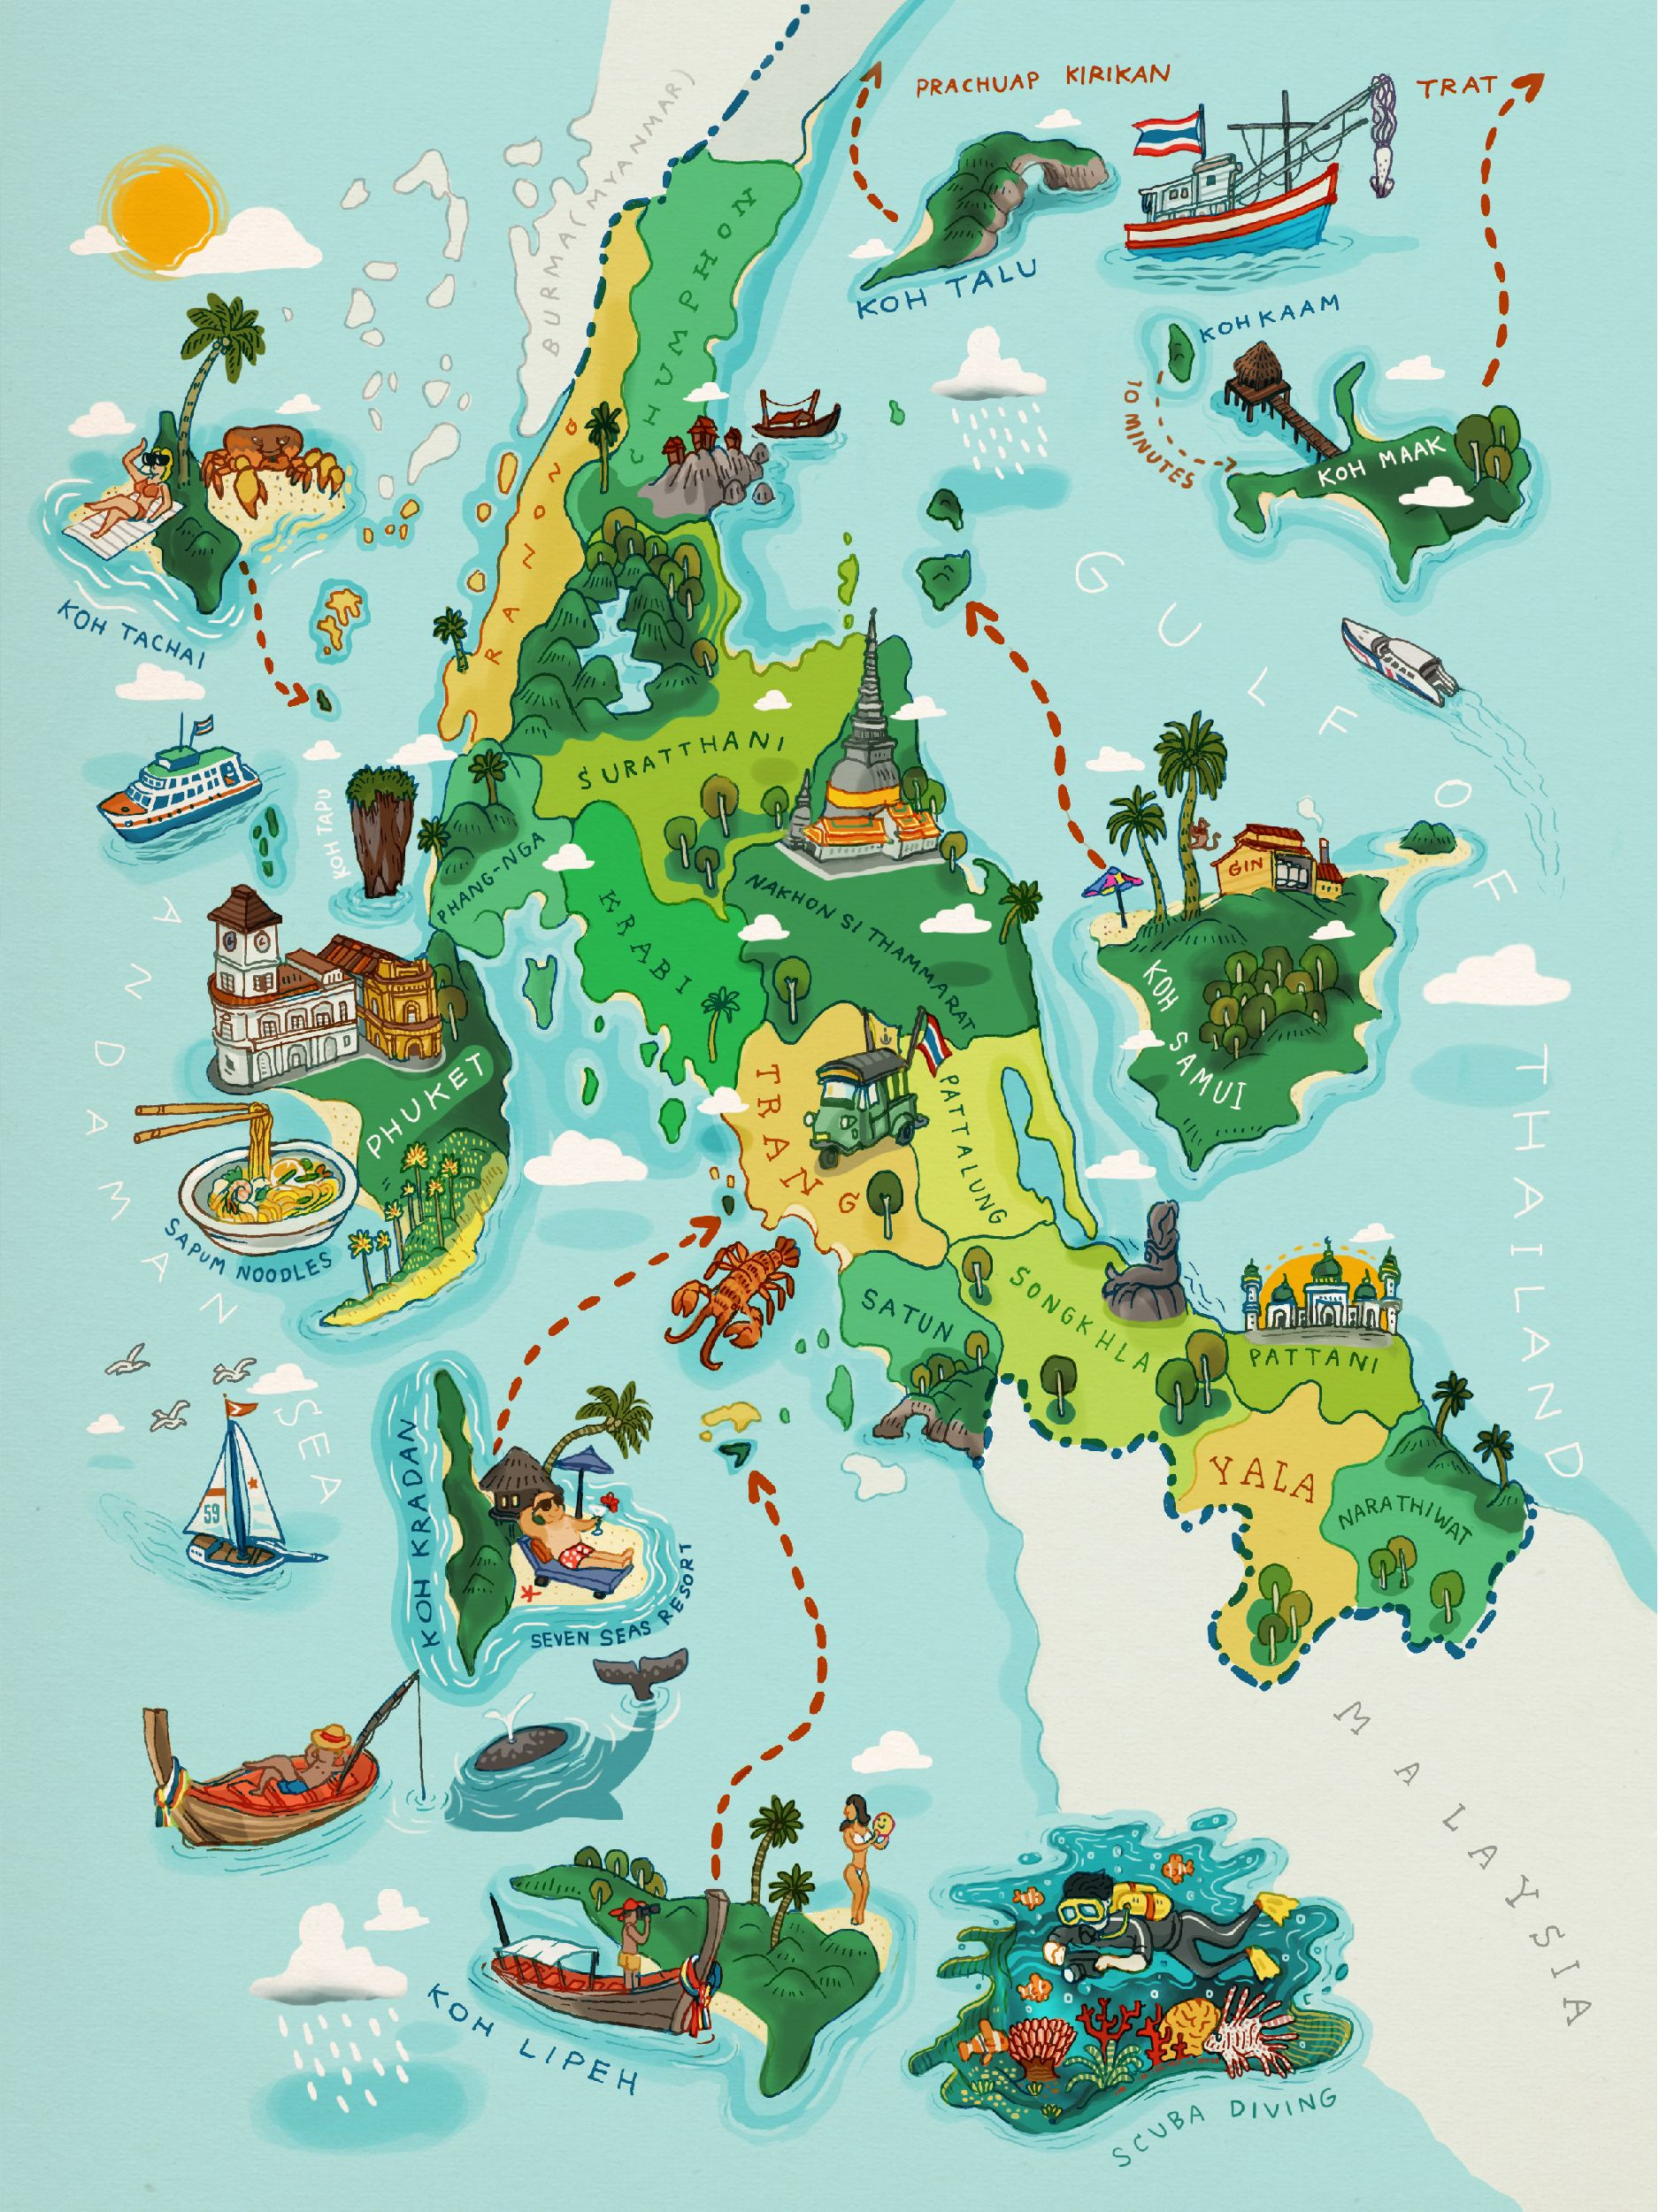 A Map Illustration for the tourist pocket book